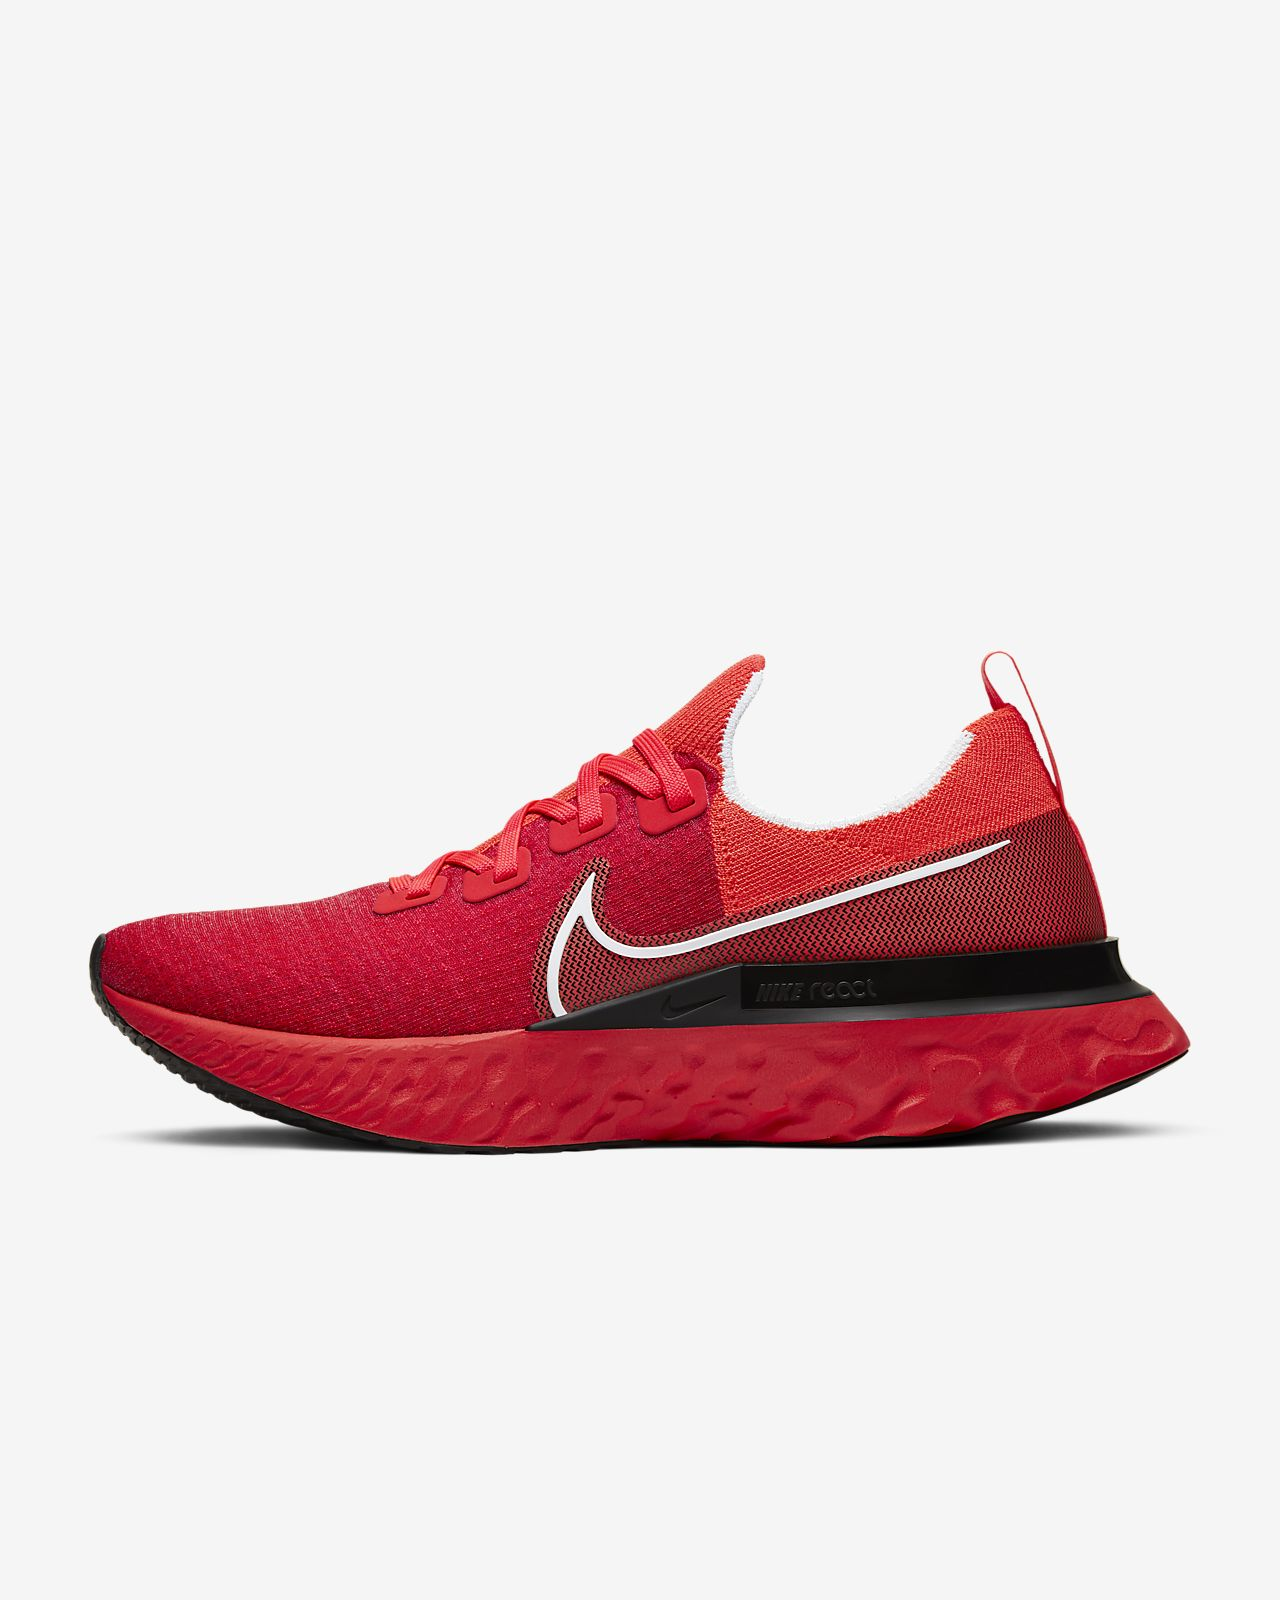 Nike React Infinity Run Flyknit Men's Running Shoe